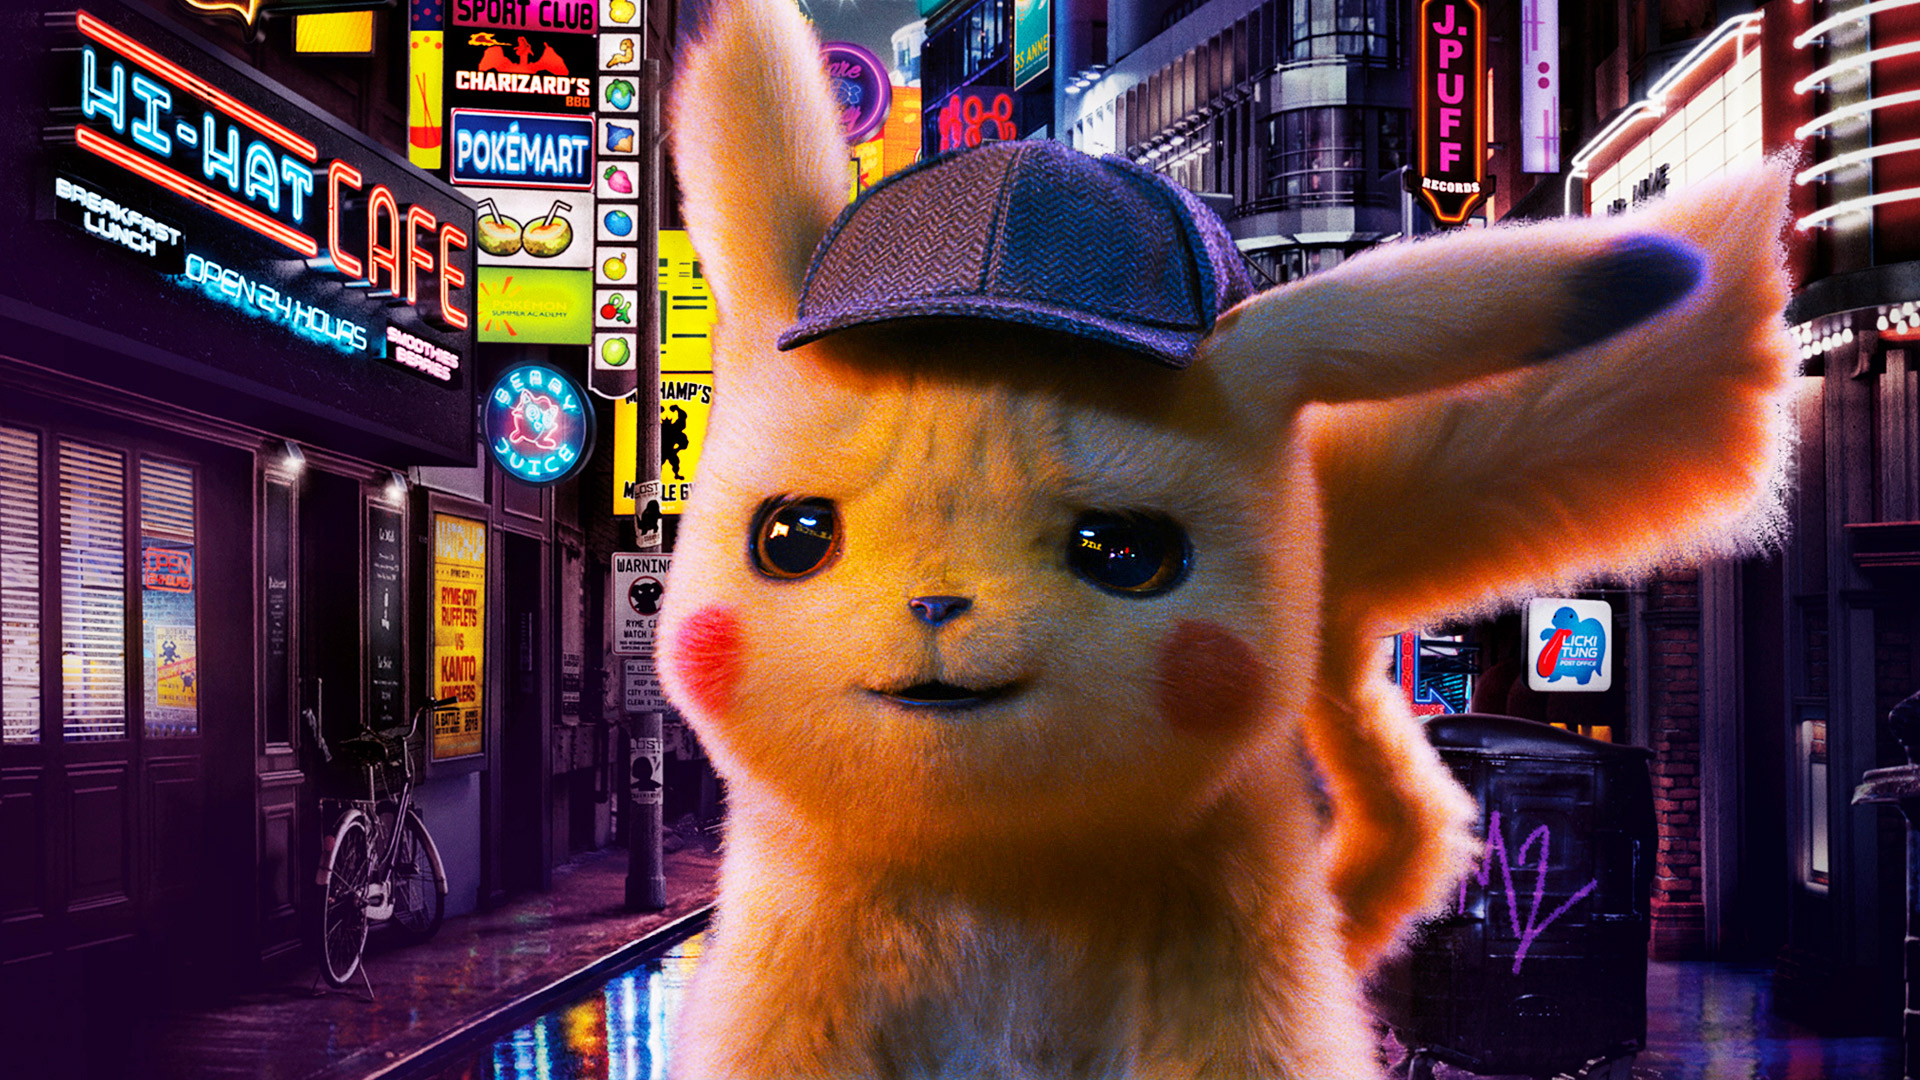 Pokemon Detective Pikachu 2019 Movie Reviews Popzara Press